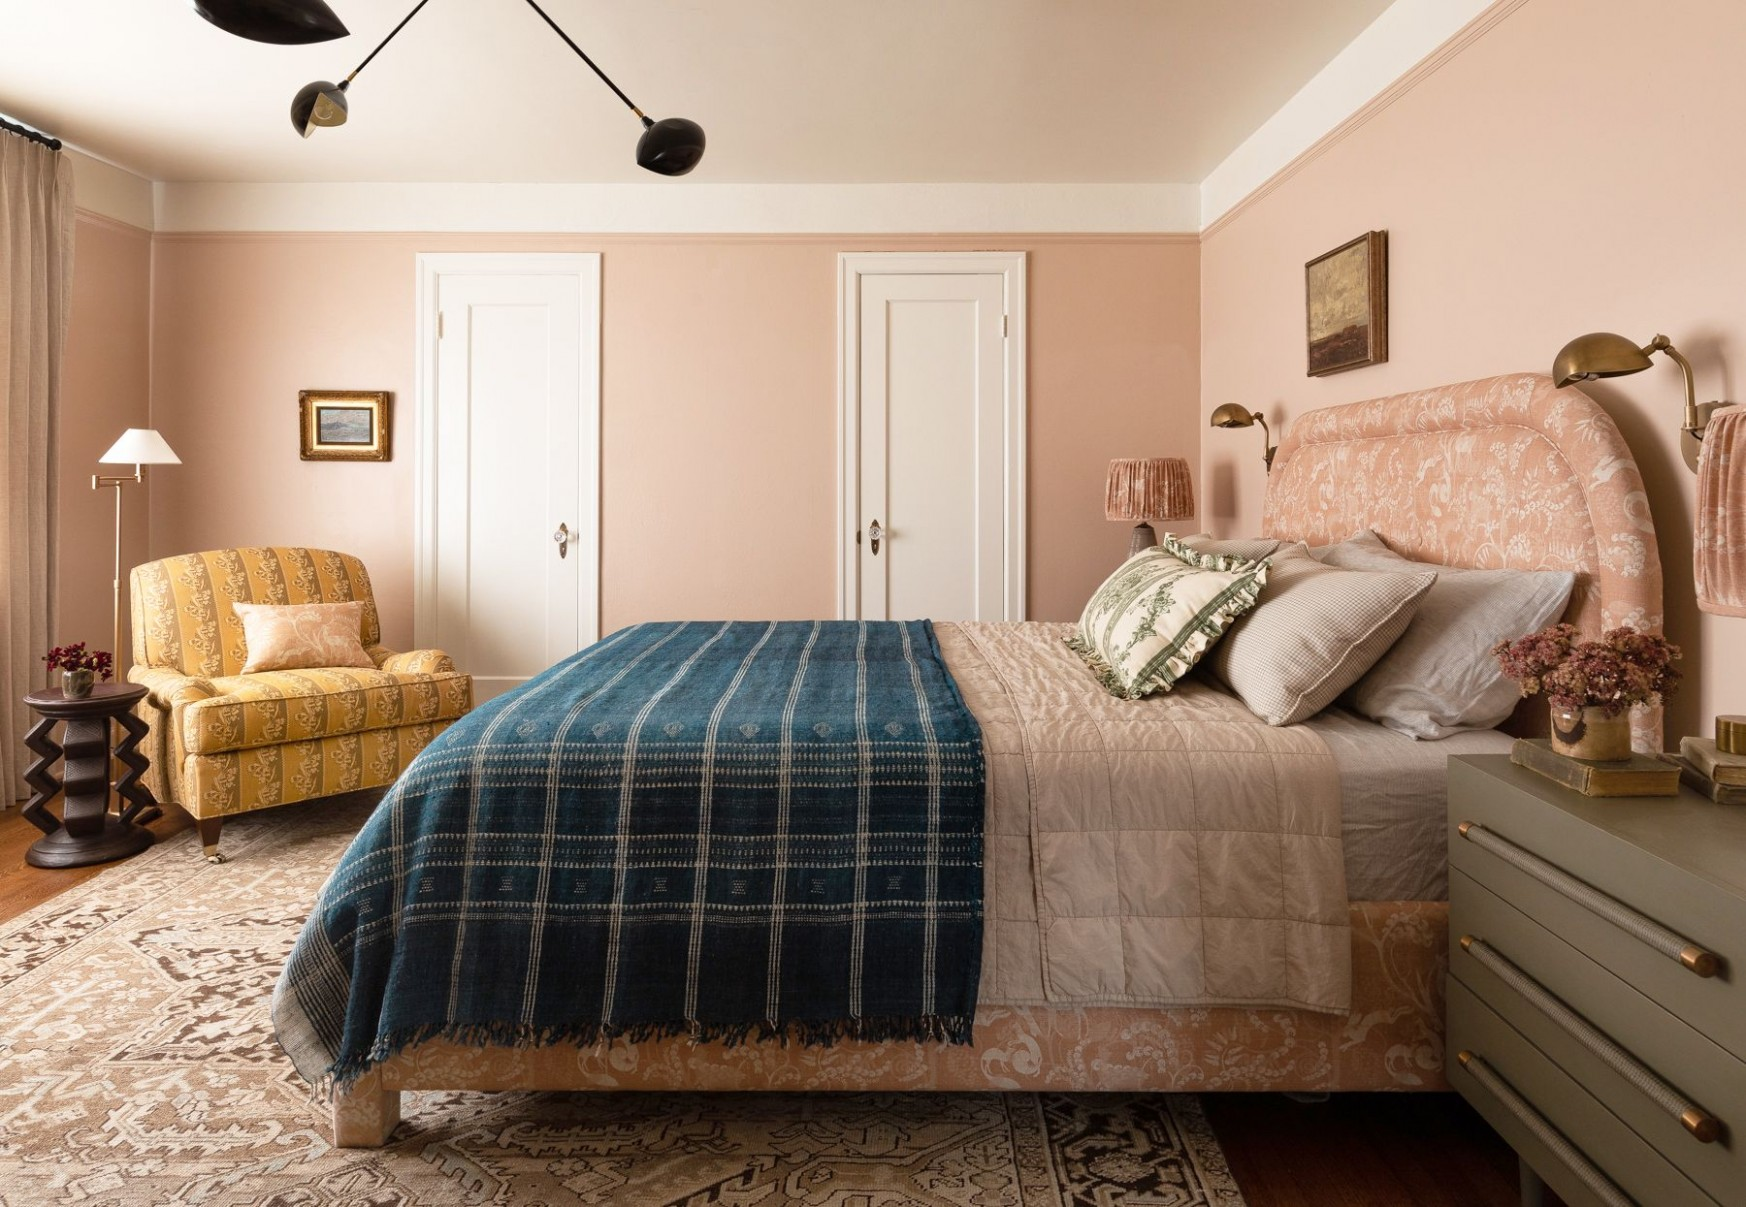 12 Best Bedroom Colors 12 - Paint Color Ideas for Bedrooms - Bedroom Ideas Paint